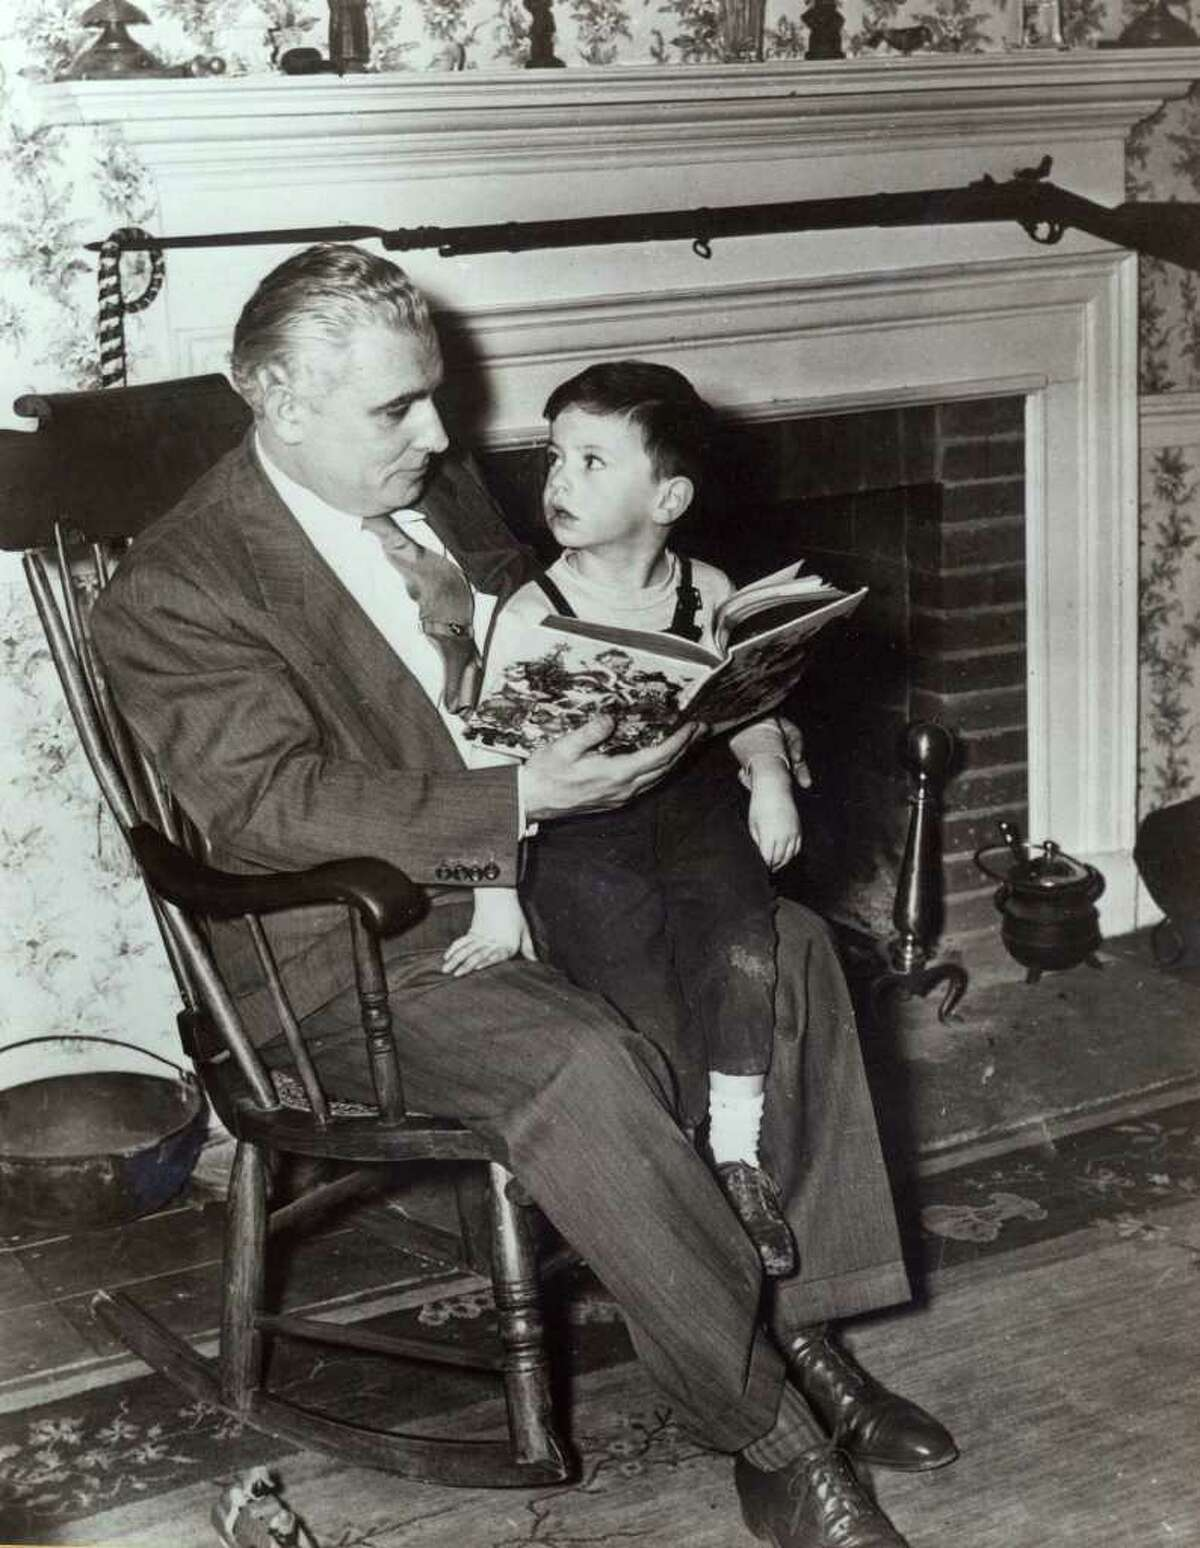 This photo released by the Dodd family shows former U.S. Sen Thomas Dodd, reading to his youngest son Christopher in Lebanon, Conn. Christopher would also go on to represent Connecticut in the U.S. Senate. (AP Photo/Dodd Family)